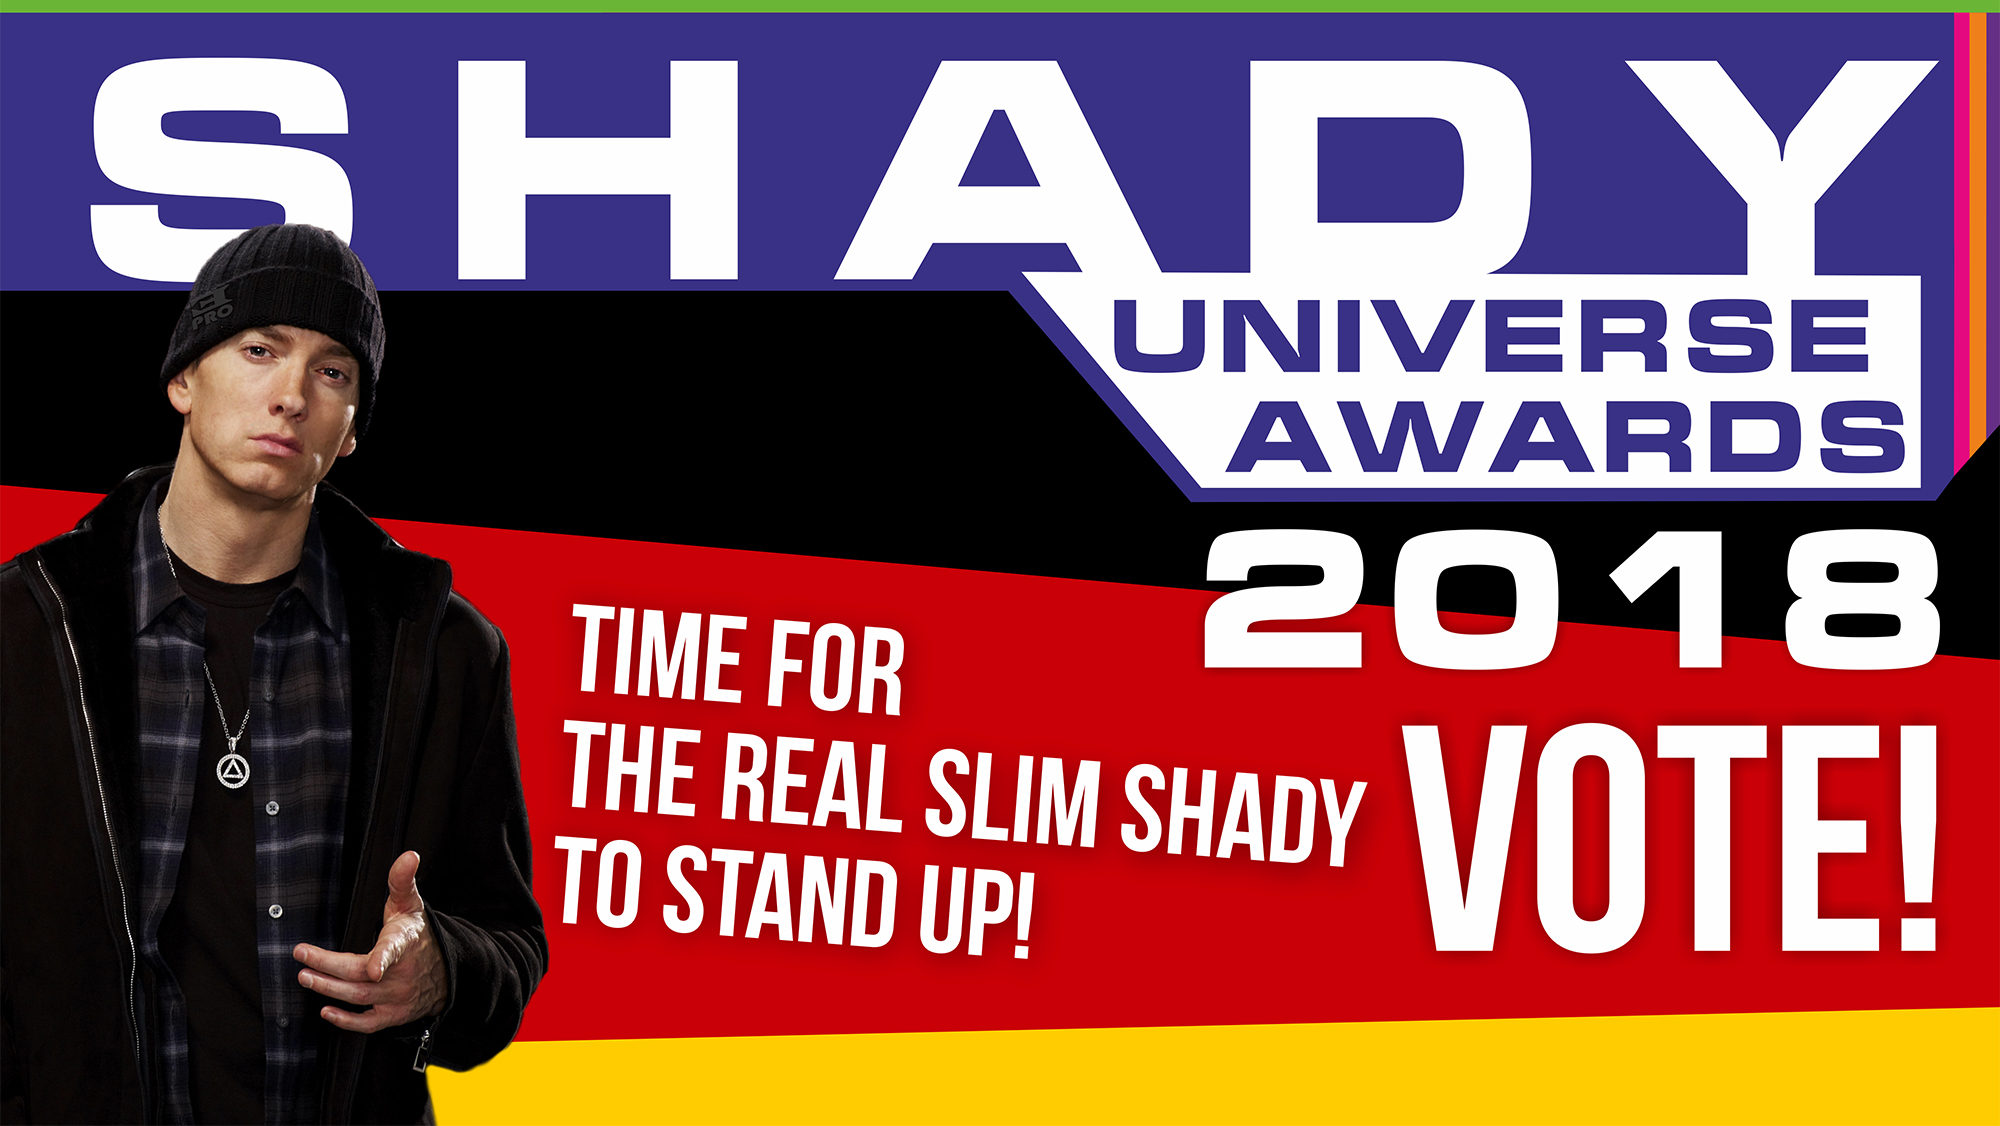 Shady Universe Awards 2018: Time for the Real Slim Shady to Stand Up!